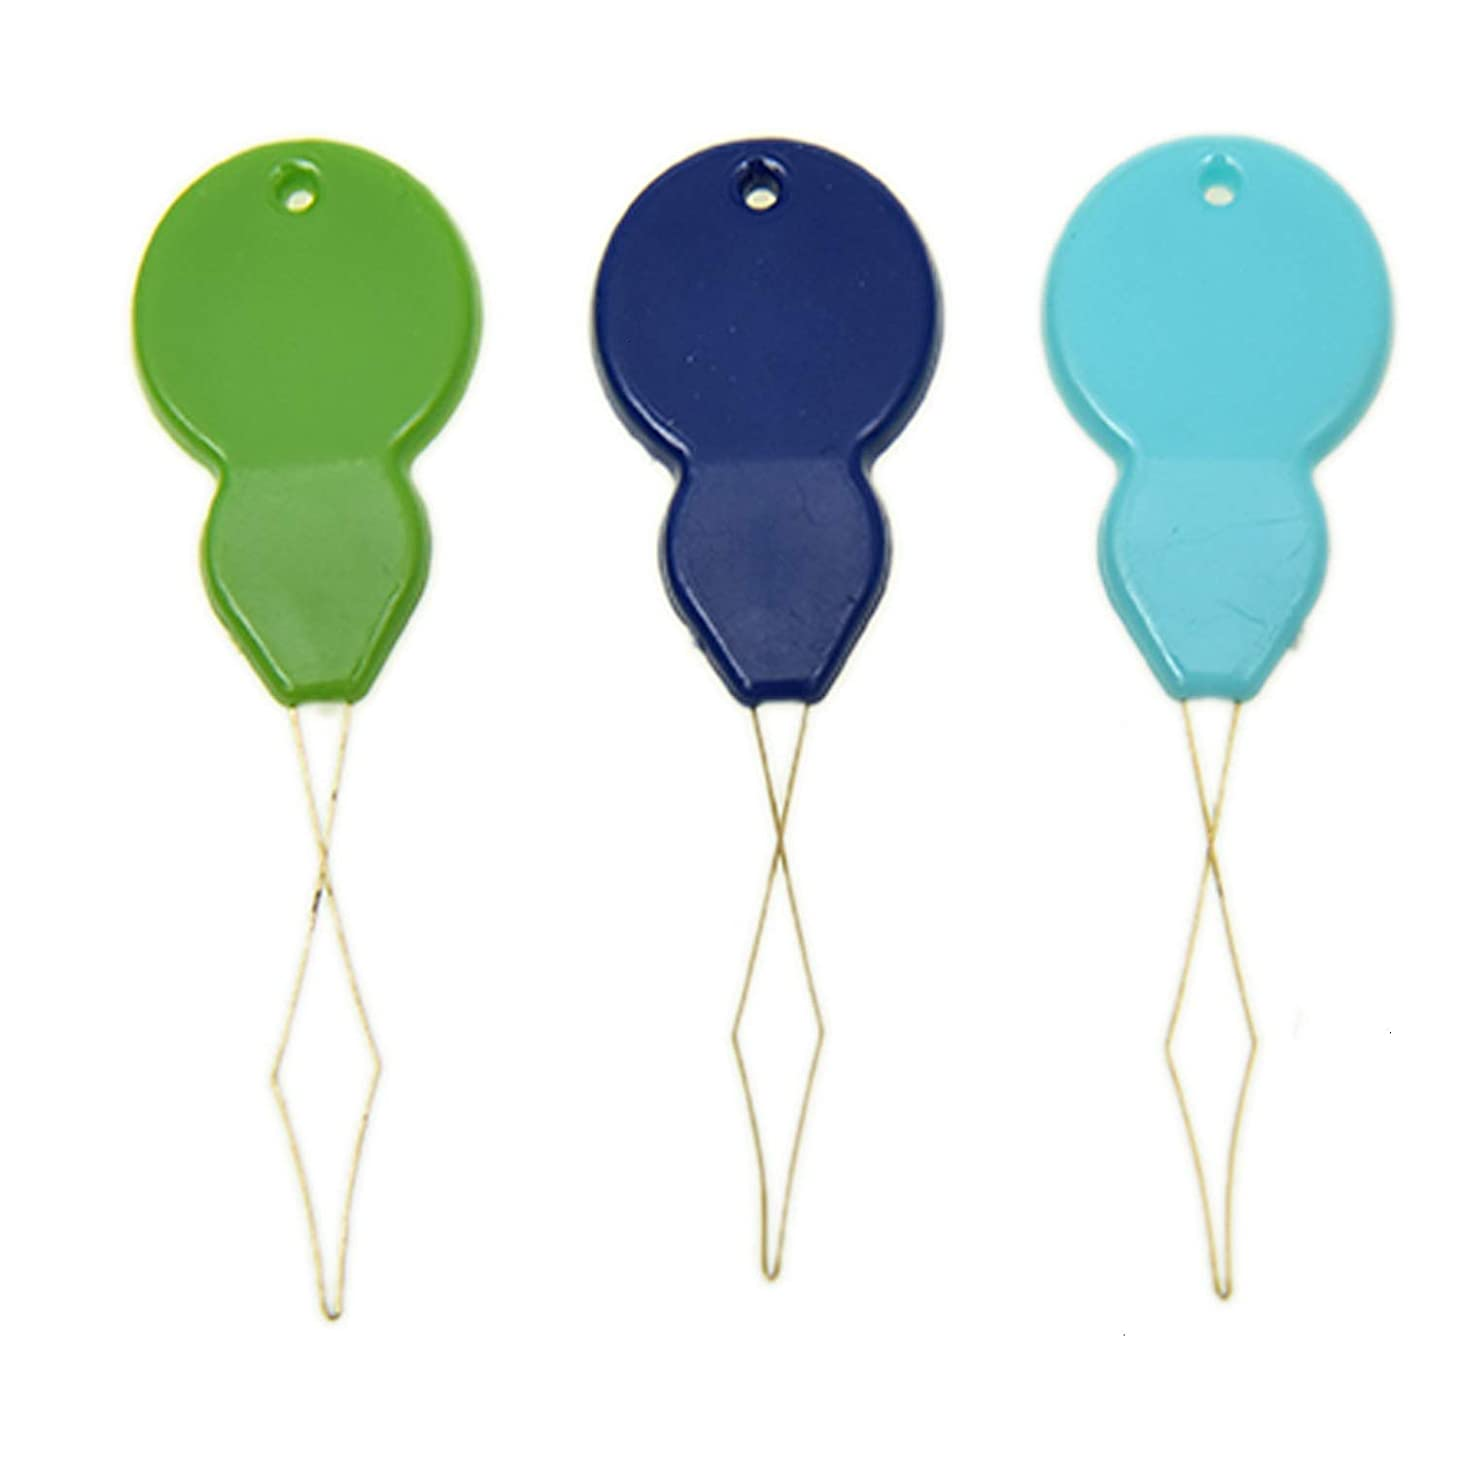 Pomeat 100PCS Assorted Colors Gourd Shaped Plastic Needle Threaders, Hand Machine Sewing Tool for Cross Stitch Embroidery